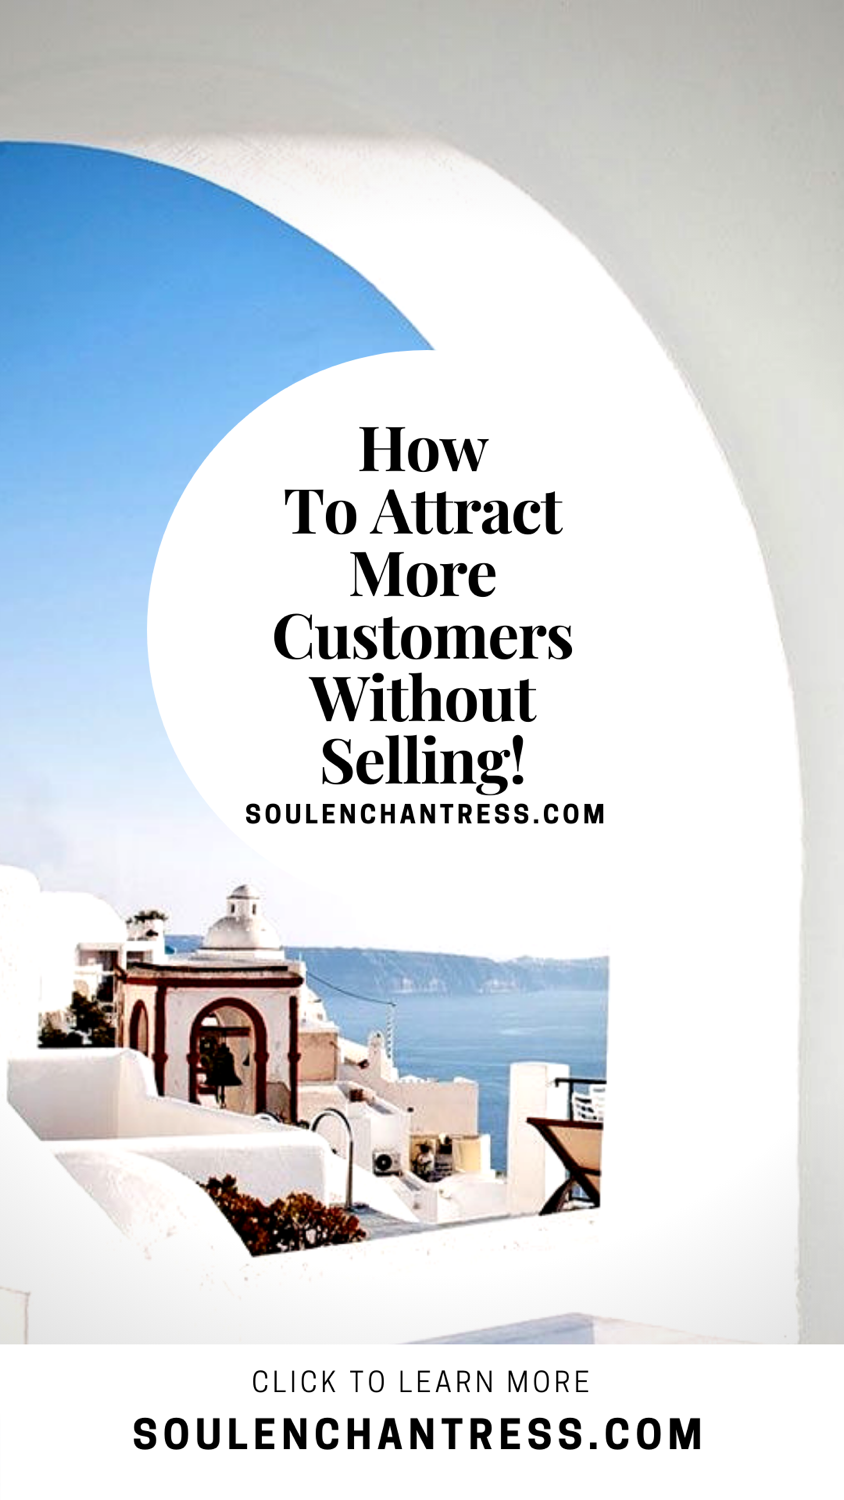 soul enchantress, how to attract more customers and sales, how to increase sales, starting a business, business start up courses